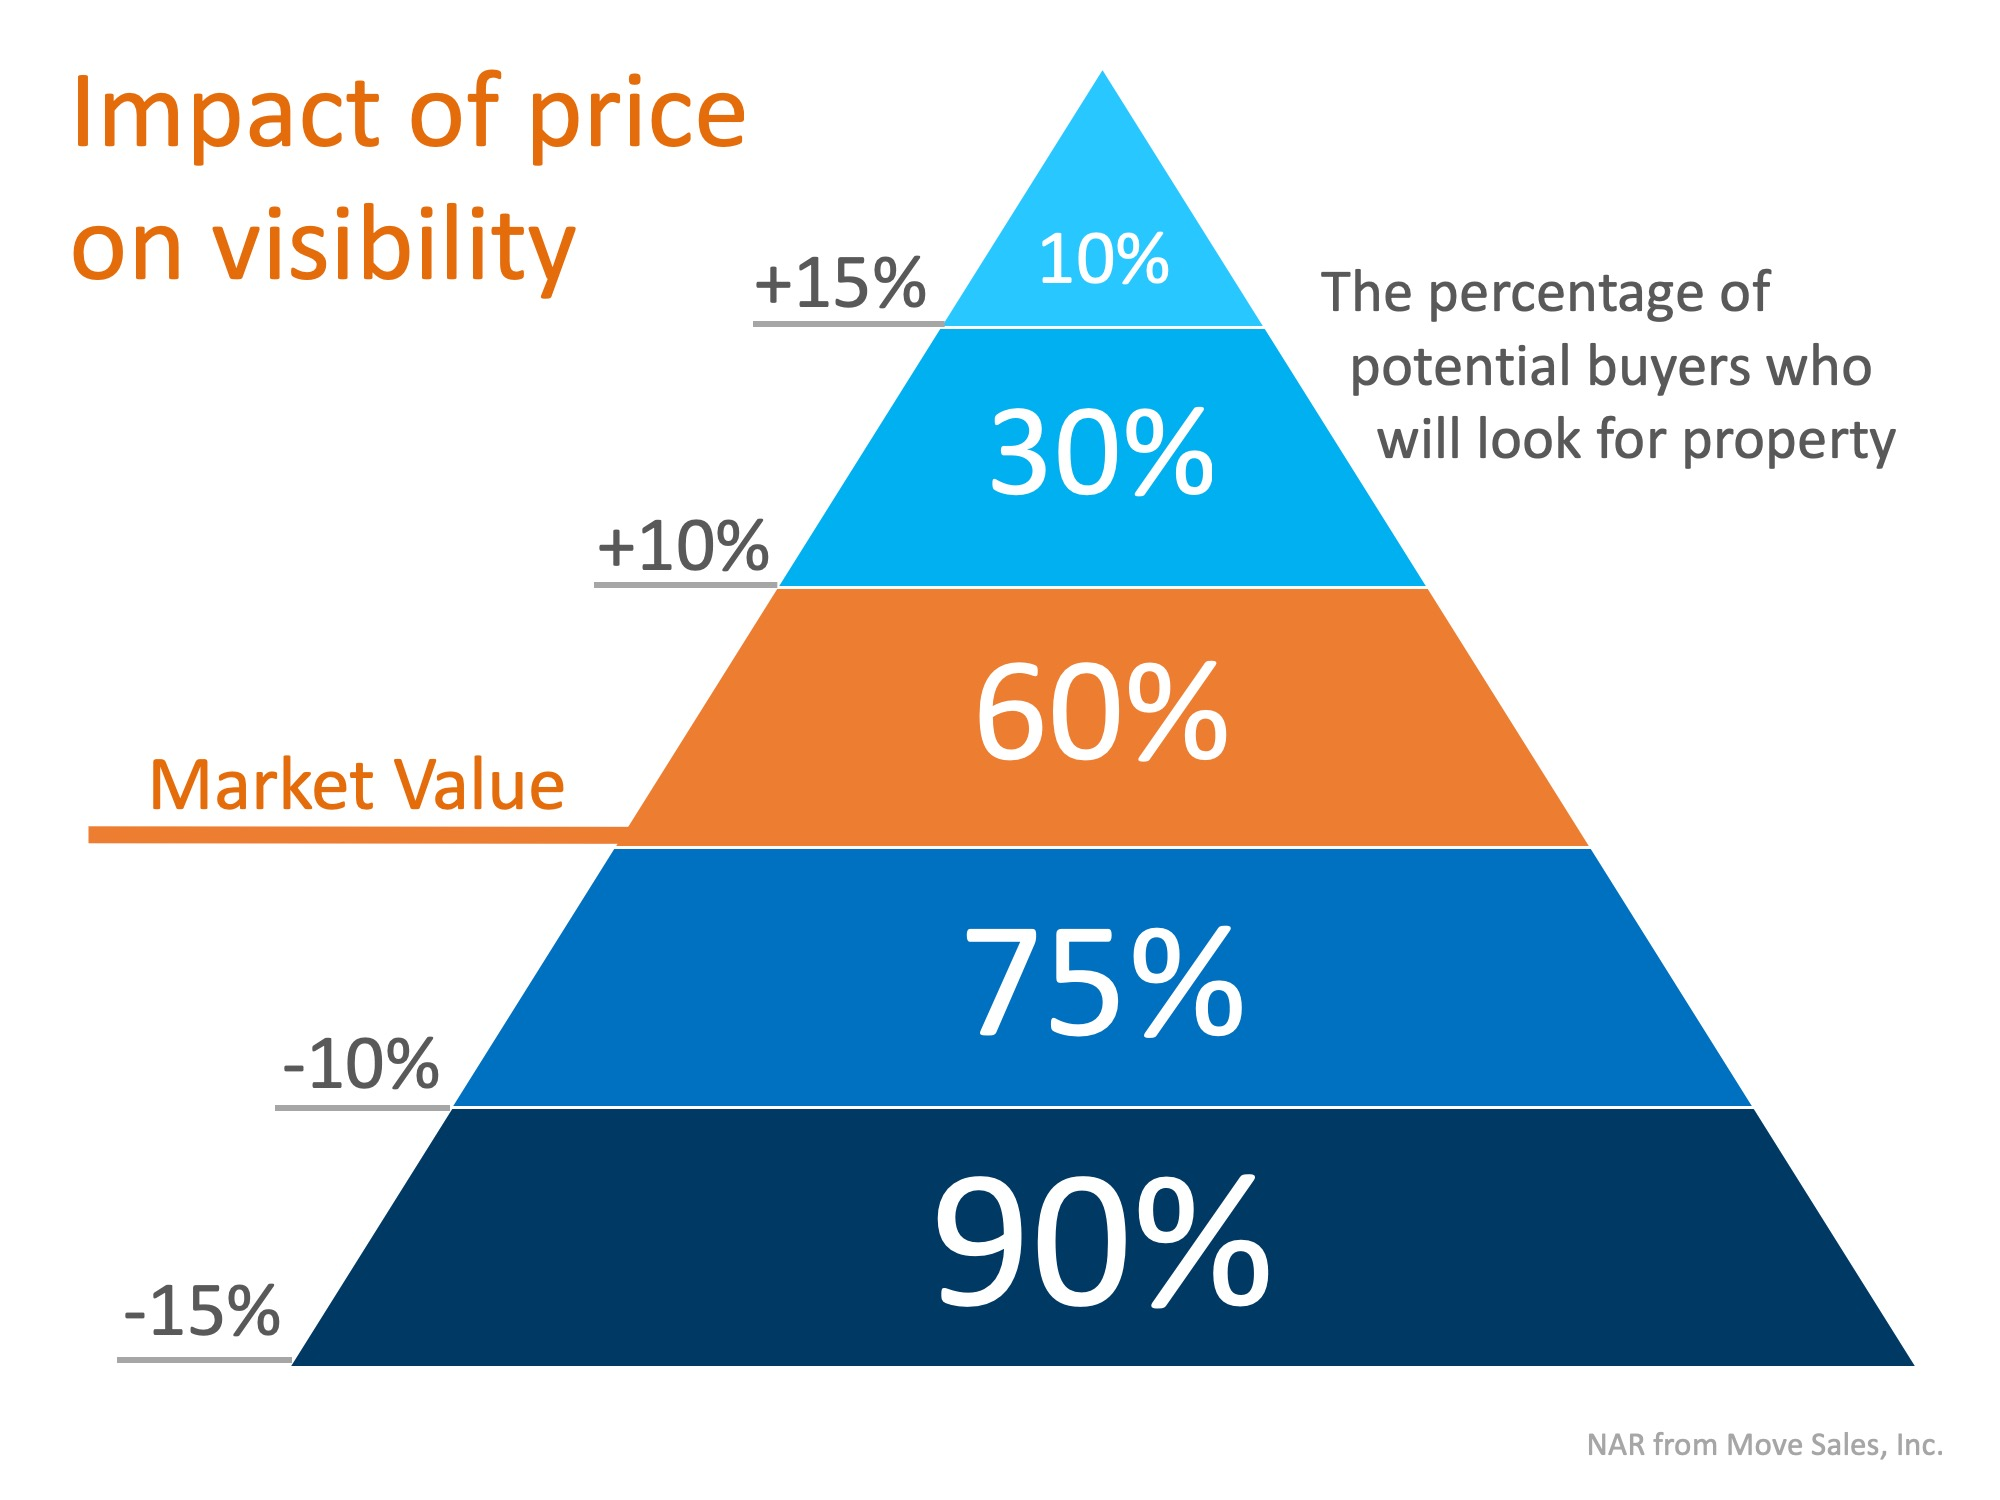 Is Your House Priced To Sell Immediately (PTSI)? | MyKCM